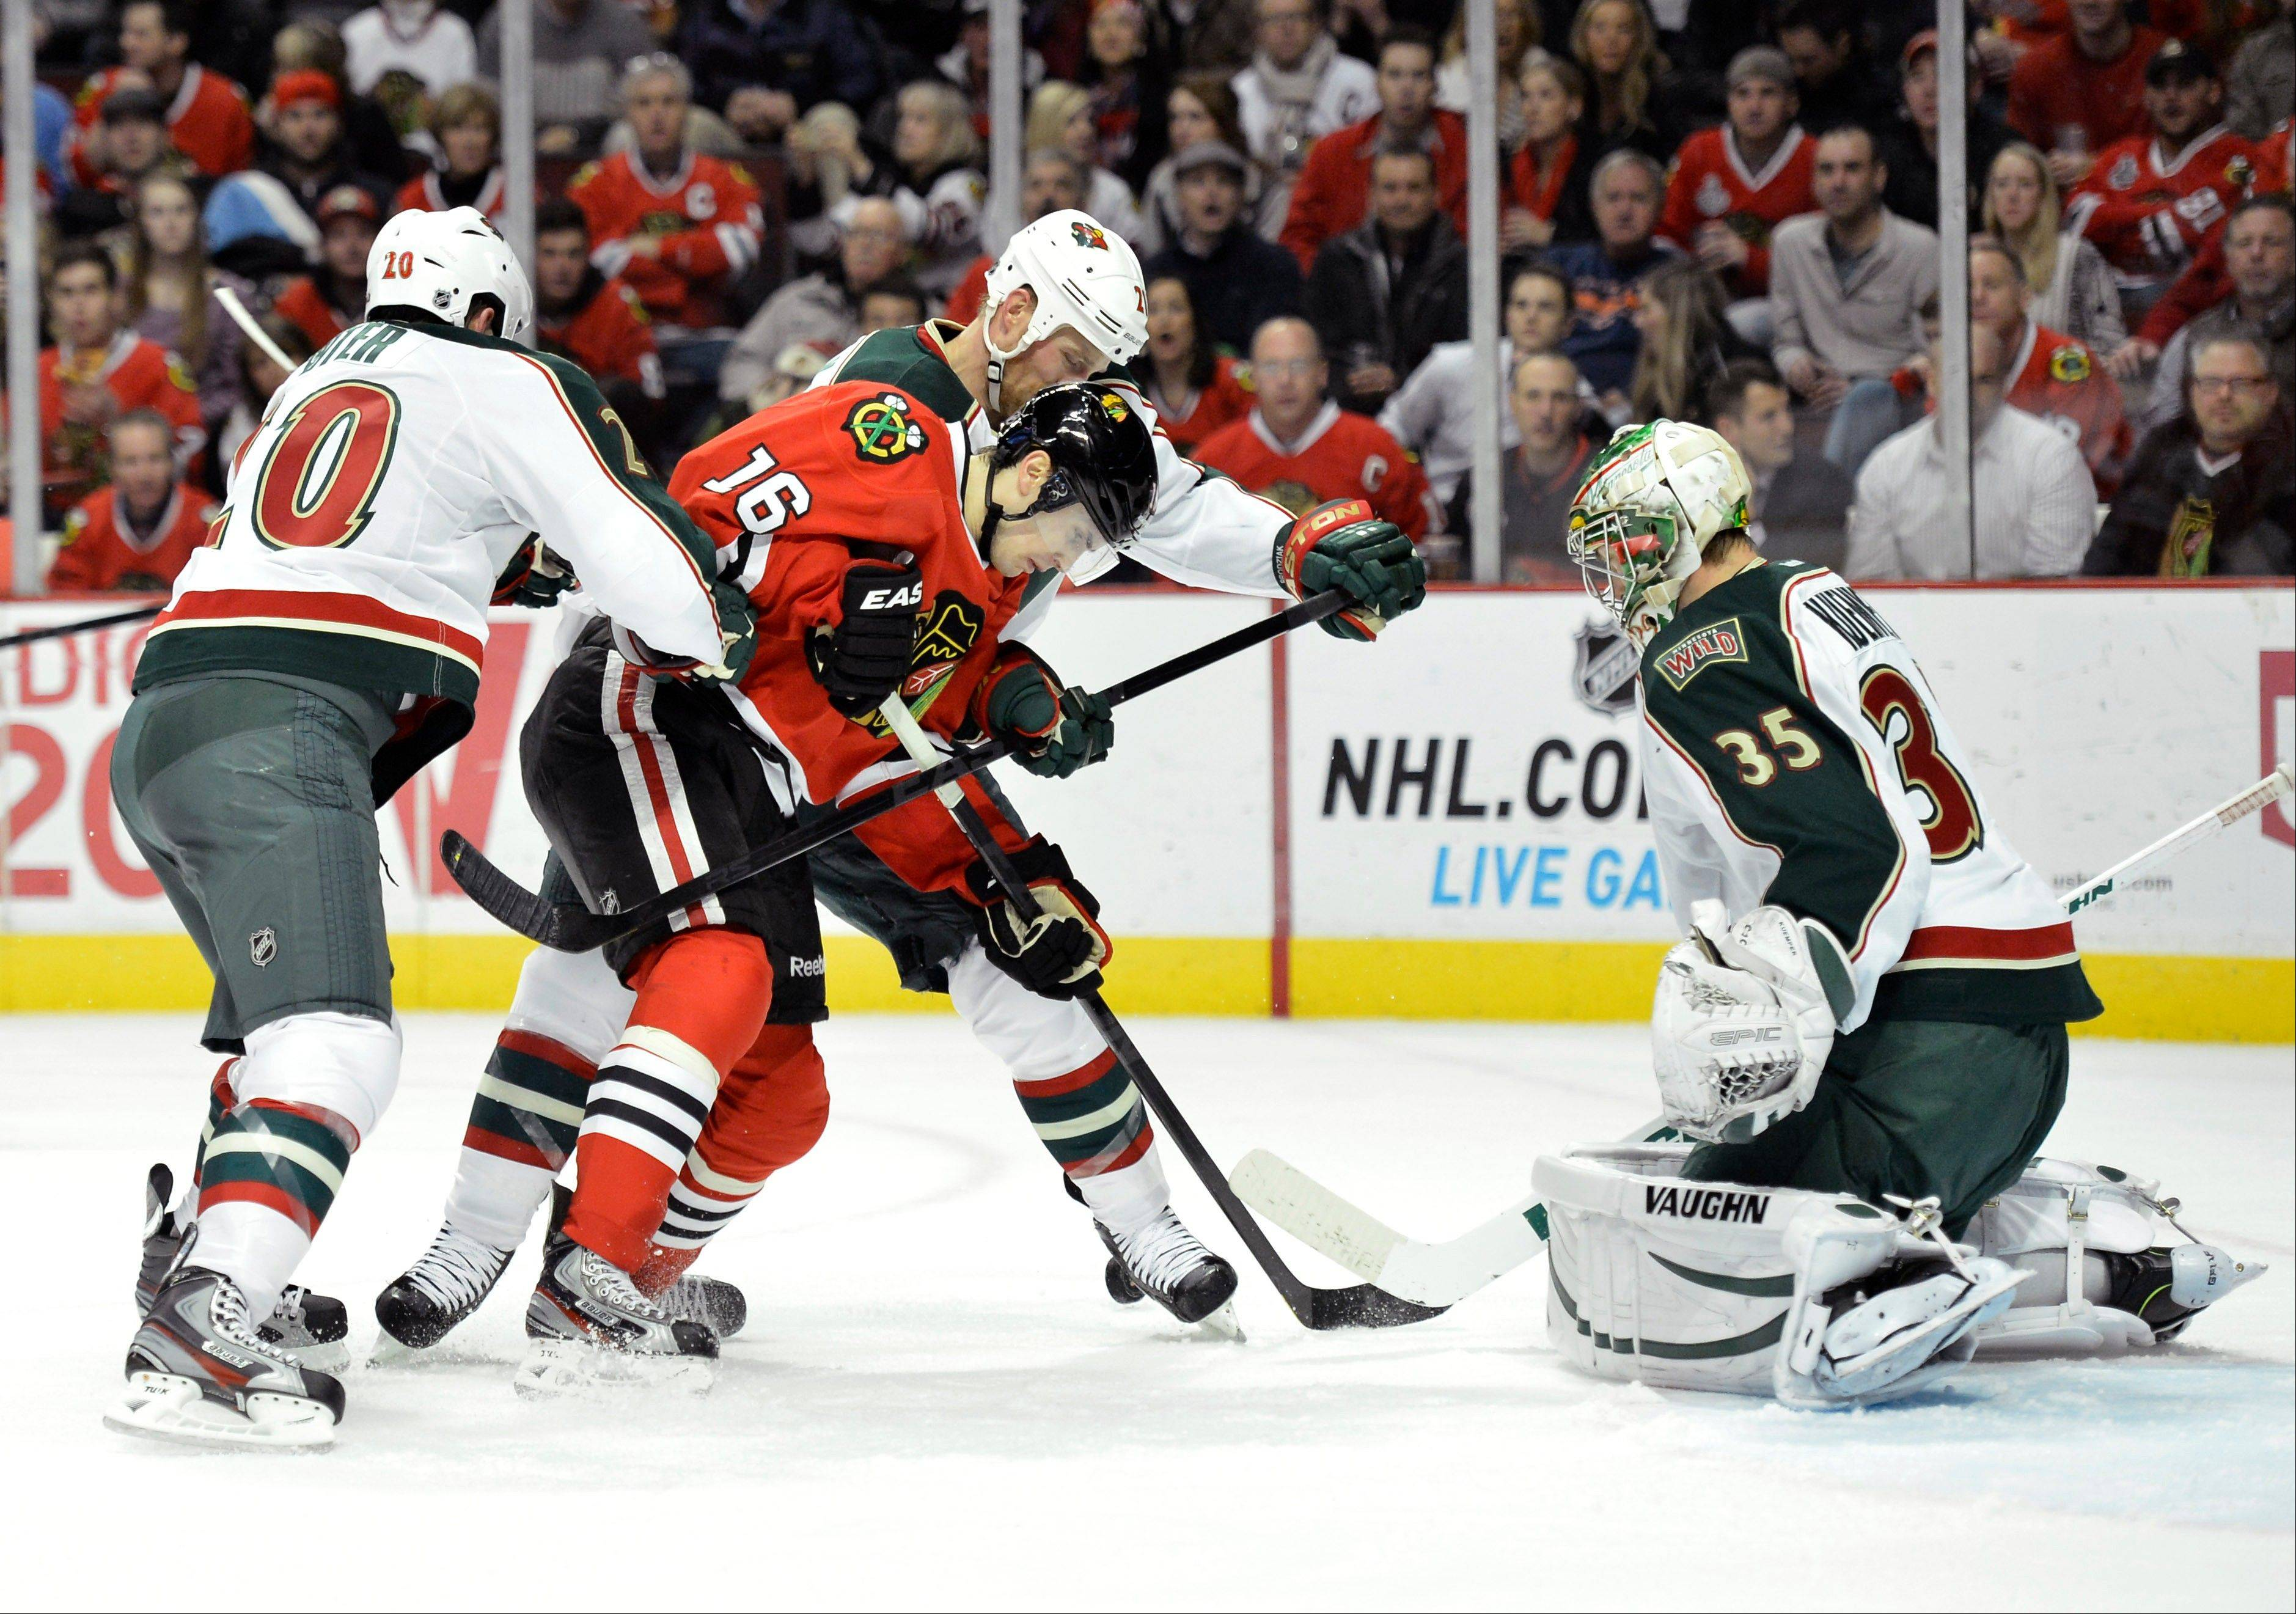 Chicago Blackhawks center Marcus Kruger of Sweden tries to score as Minnesota Wild defenseman Ryan Suter, left to right, center Kyle Brodziak and goalie Darcy Kuemper defend during the second period .